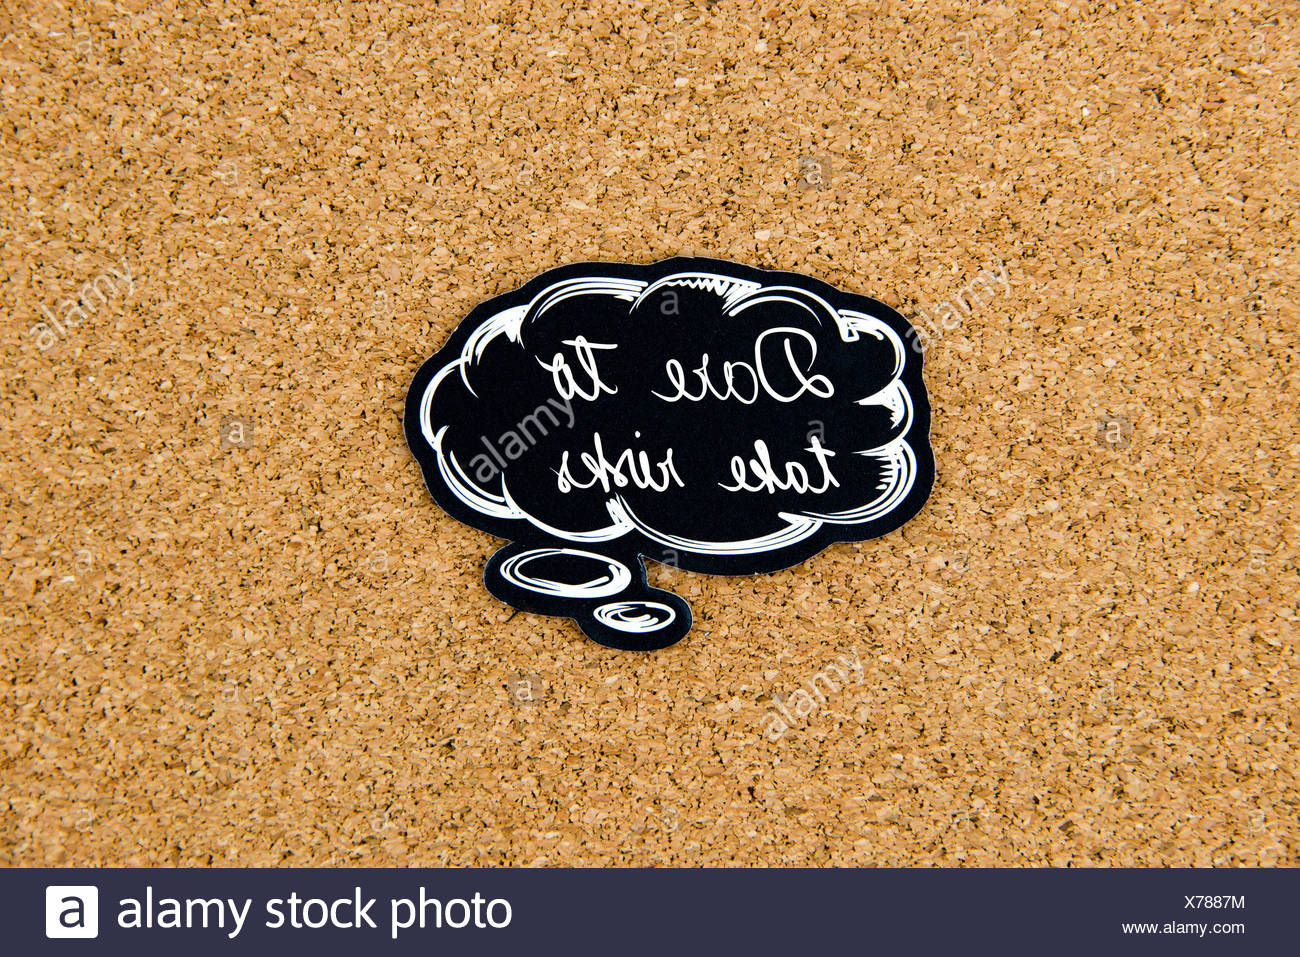 DARE TO TAKE RISKS written on black thinking bubble over cork board background, copy space available - Stock Image